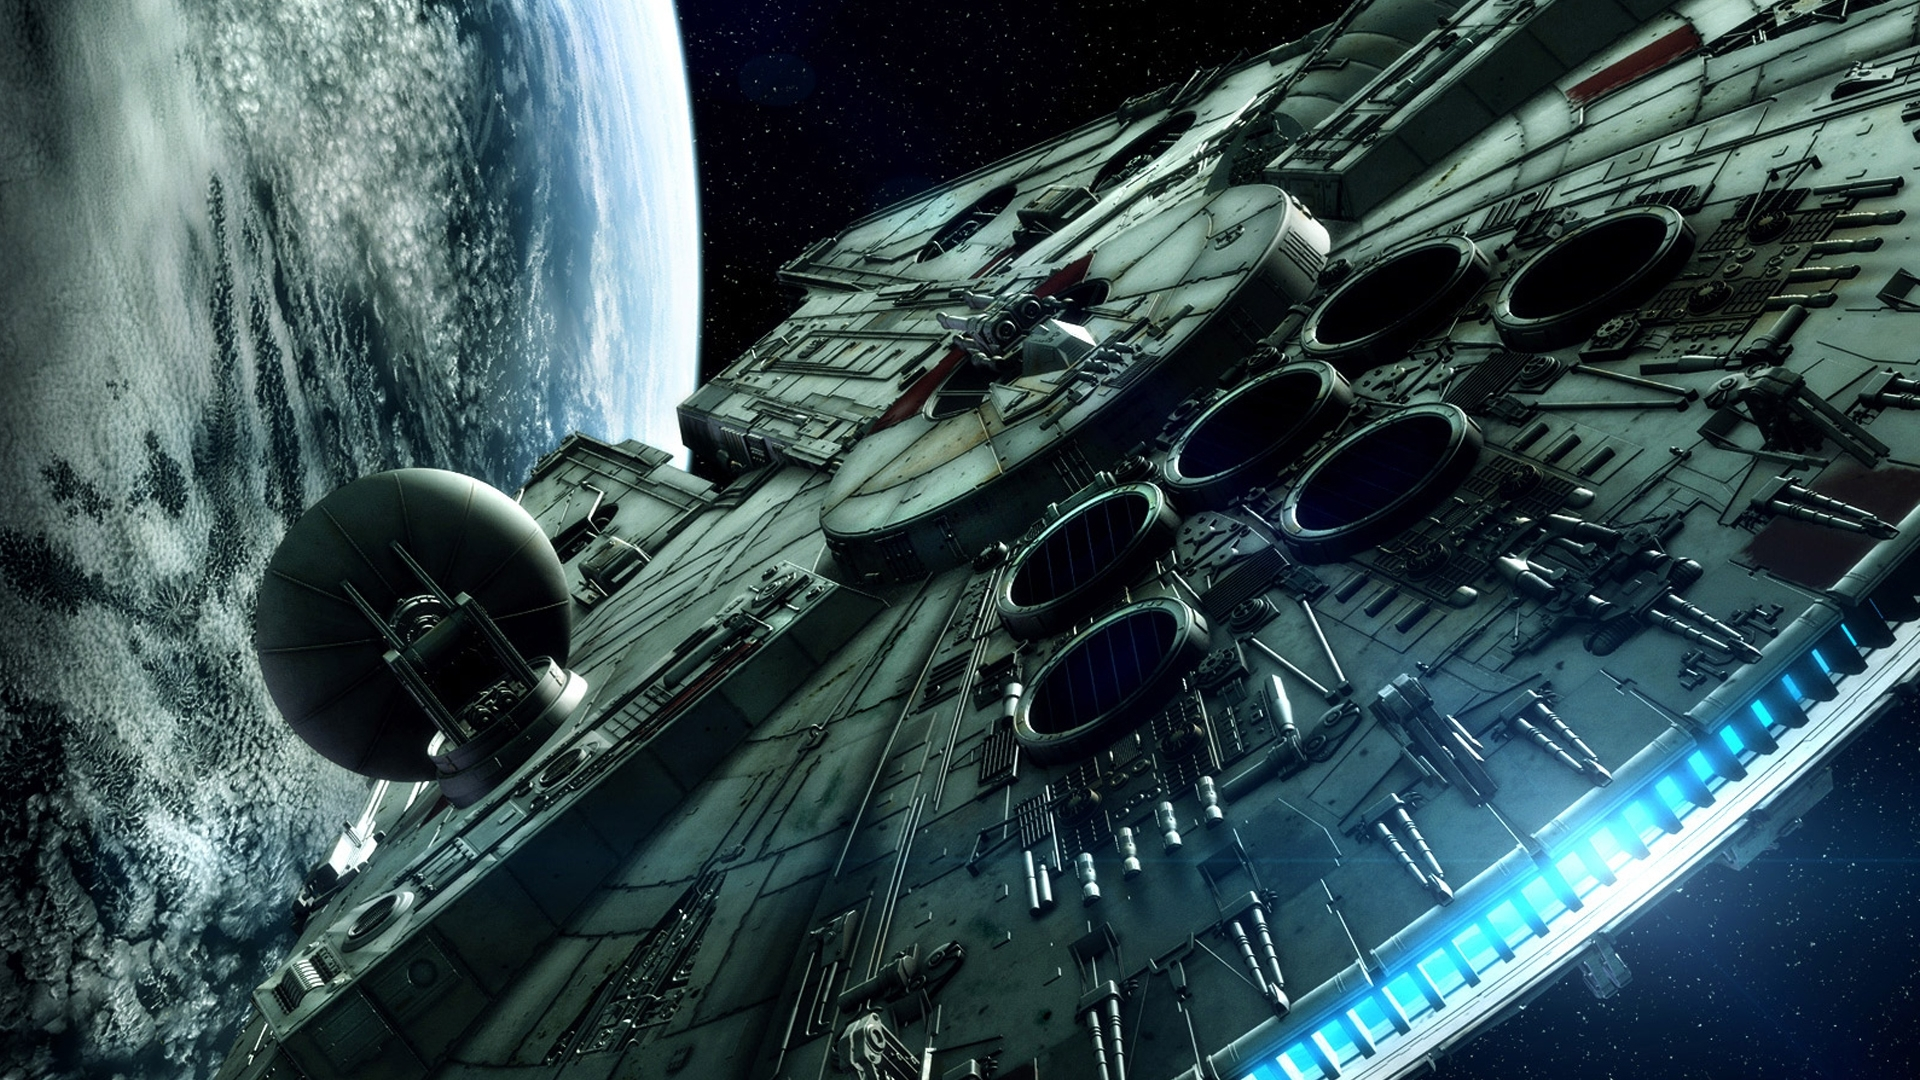 10 Latest Star Wars Hd Wallpaper 1080P FULL HD 1080p For PC Background